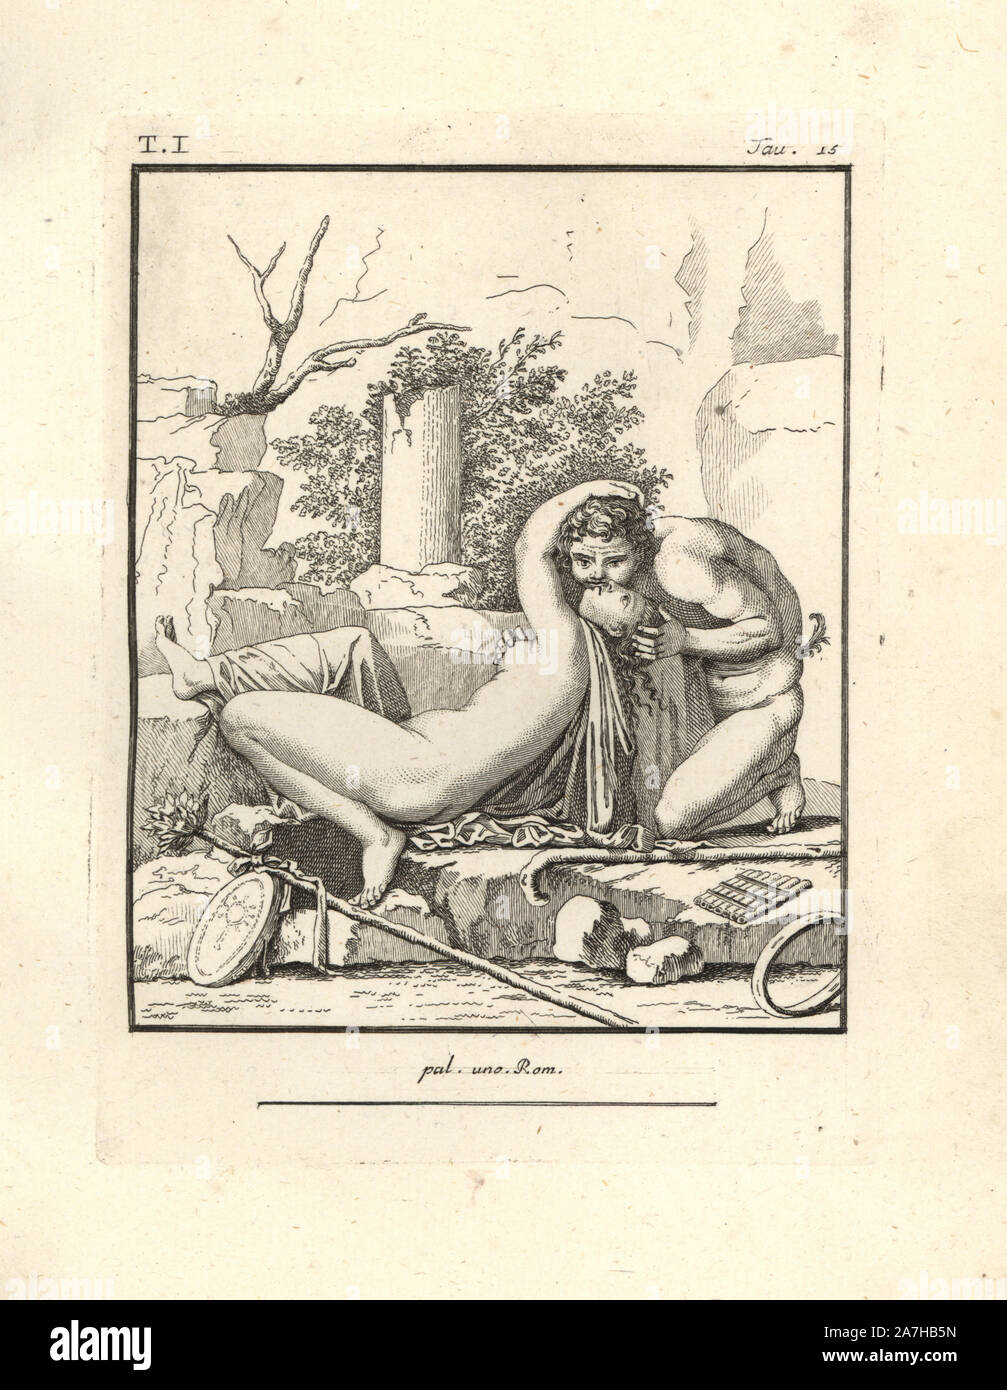 "A bacchant surprised by a faun in a desolate mountain spot. At the faun's feet are his curved stick or pedum, seven-pipe flute or syrinx, and a Rhombus, a percussion instrument like a tambourine. At the bacchant's feet are a sacred staff or thyrsus decorated with a red ribbon, and a typanum drum decorated with a picture of a sistrum. Copperplate engraved by Tommaso Piroli from his own ""Antichita di Ercolano"" (Antiquities of Herculaneum), Rome, 1789.  Italian artist and engraver Piroli (1752-1824) published six volumes between 1789 and 1807 documenting the murals and bronzes found in Heraculane Stock Photo"